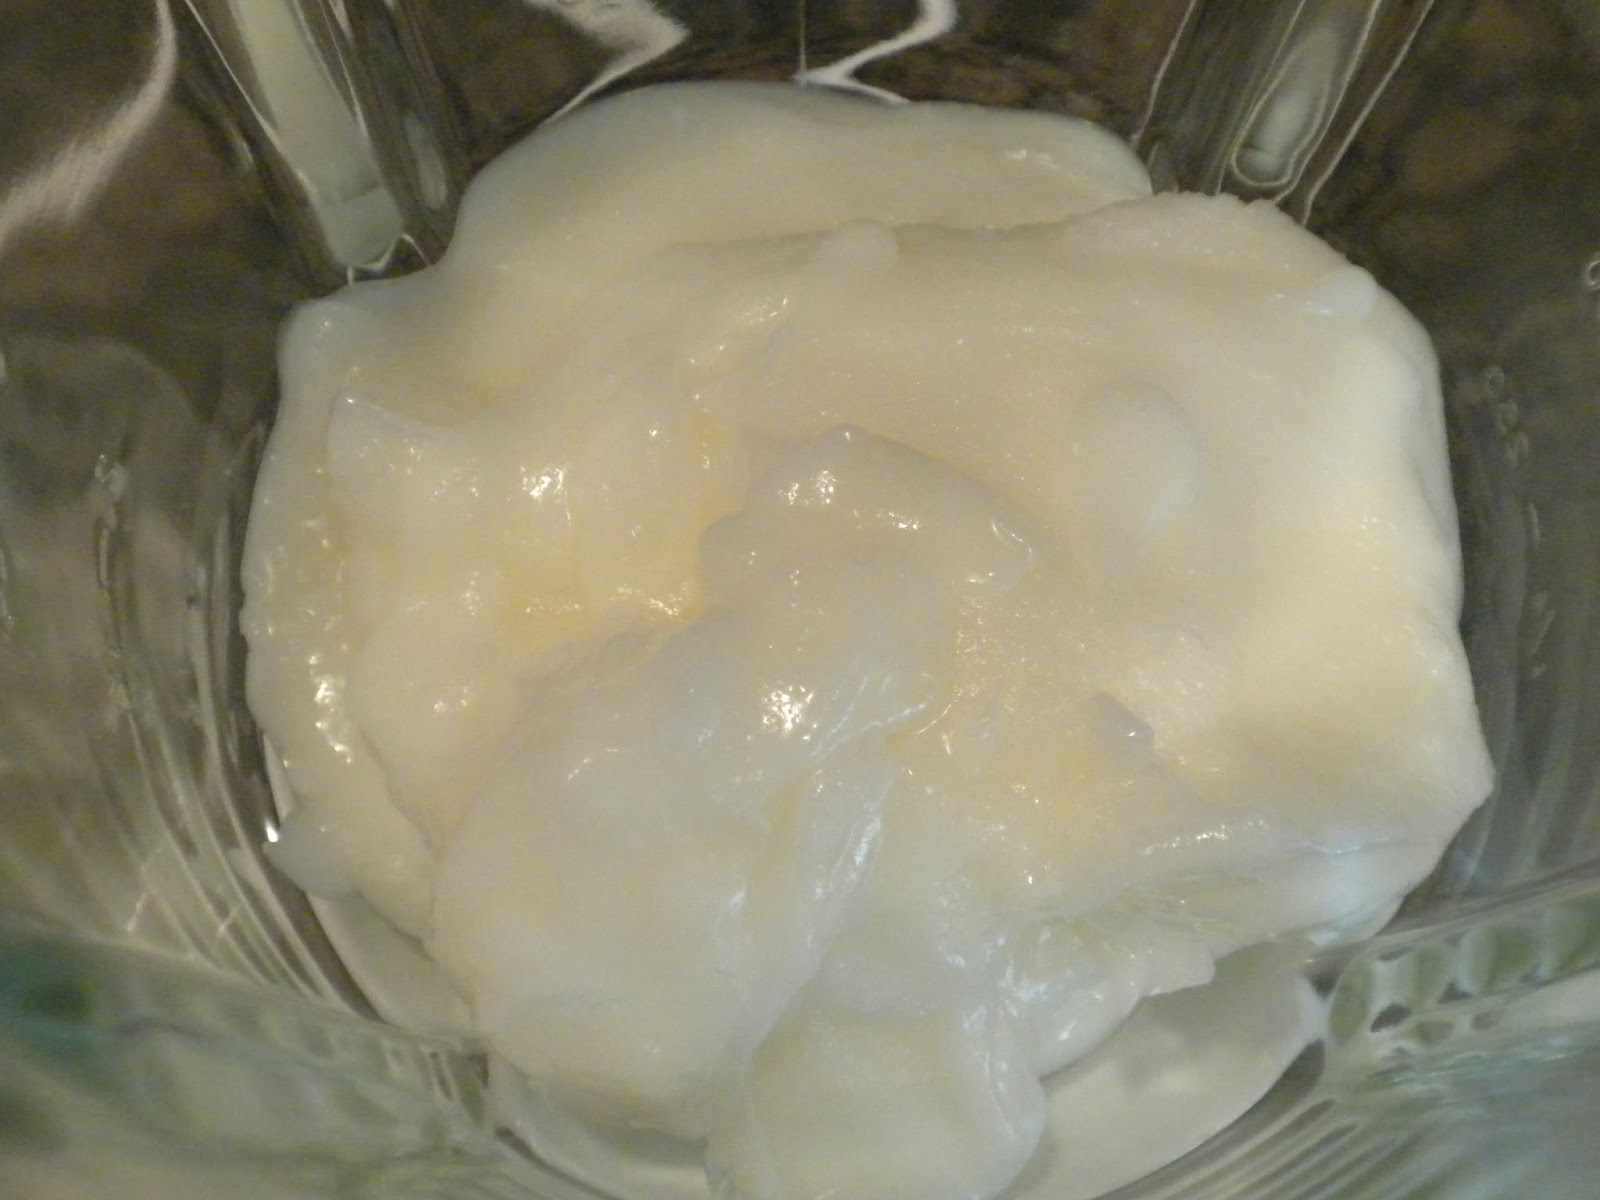 Homemade Vegan Butter as seen on Substance of Living